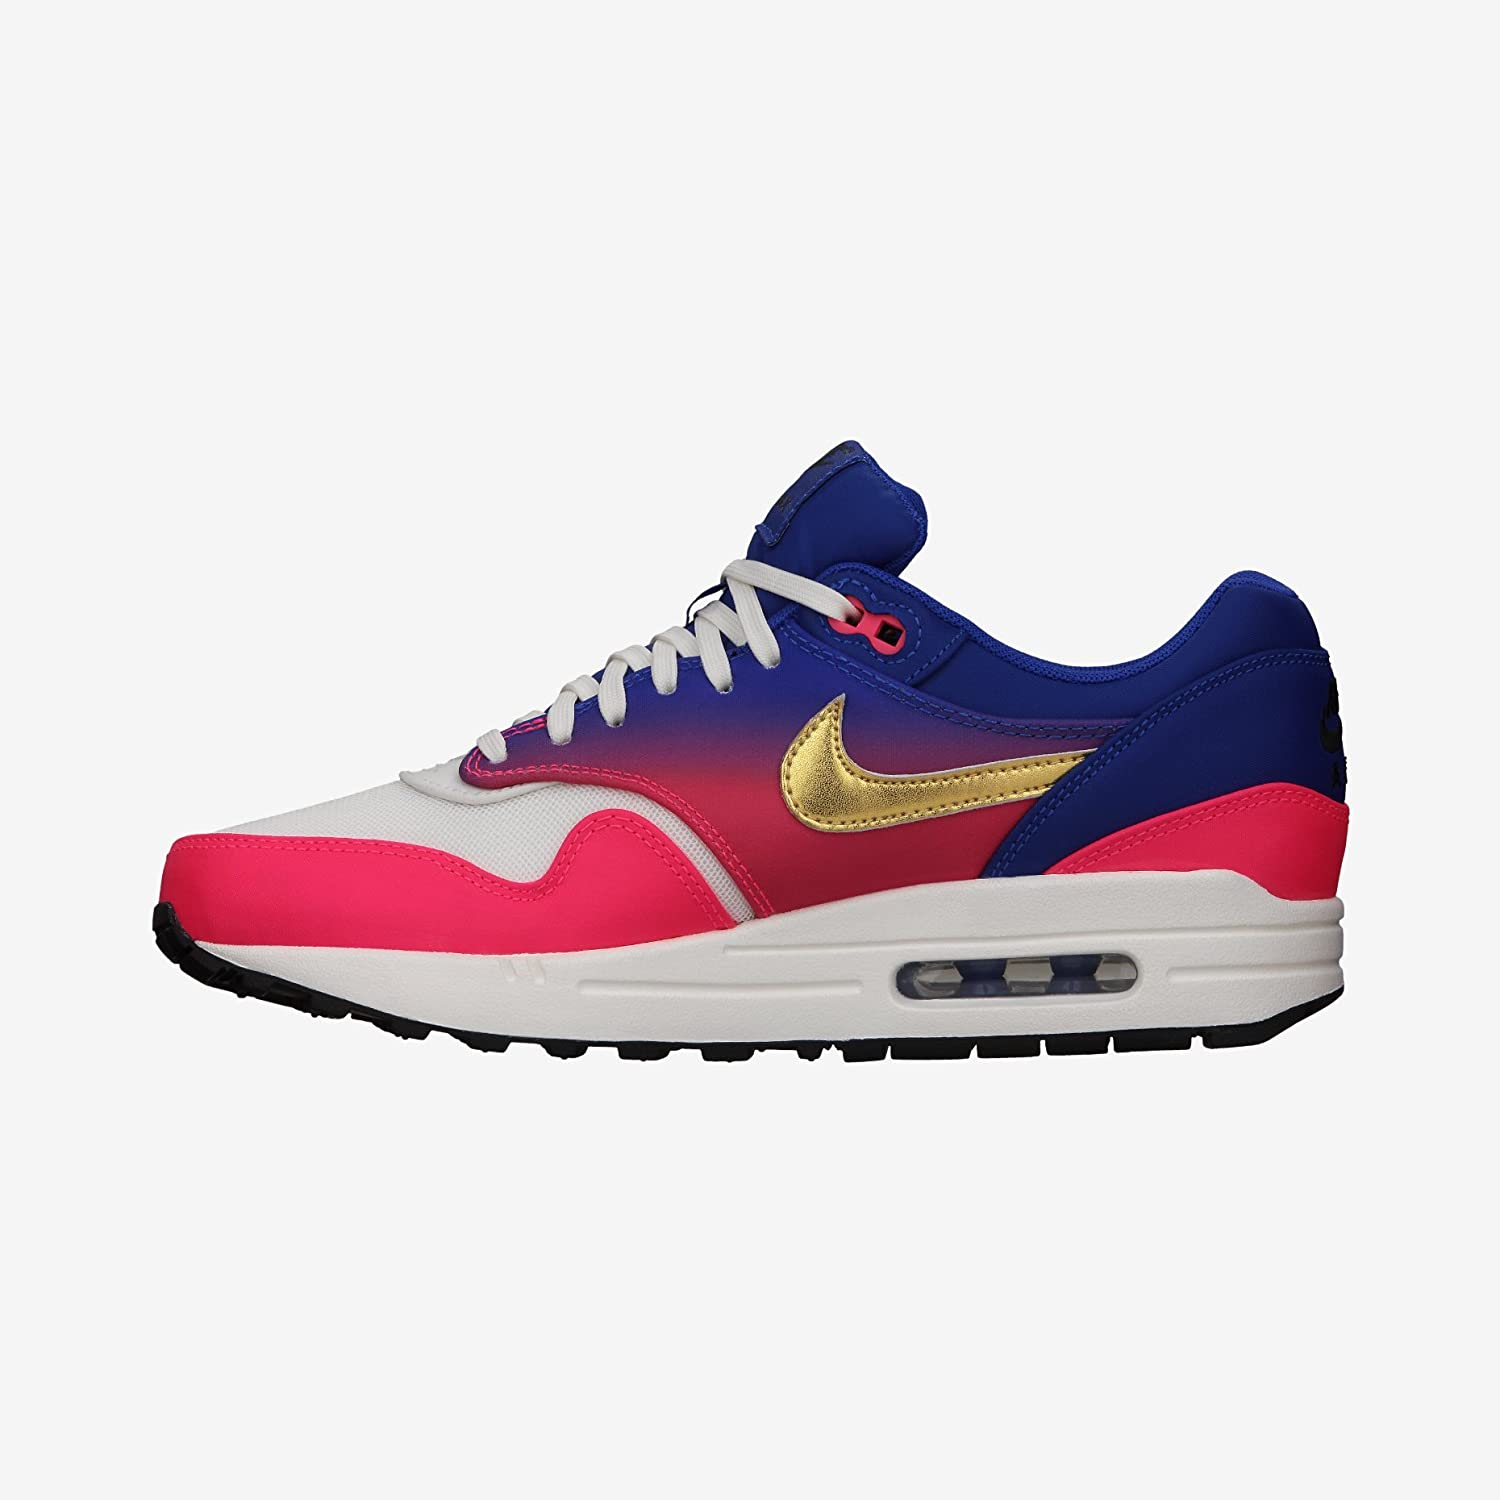 W'S Air Max 1 Prm 'Magista Pack' - 454746-105 - Size 5 - Us Size SDIvLuTG